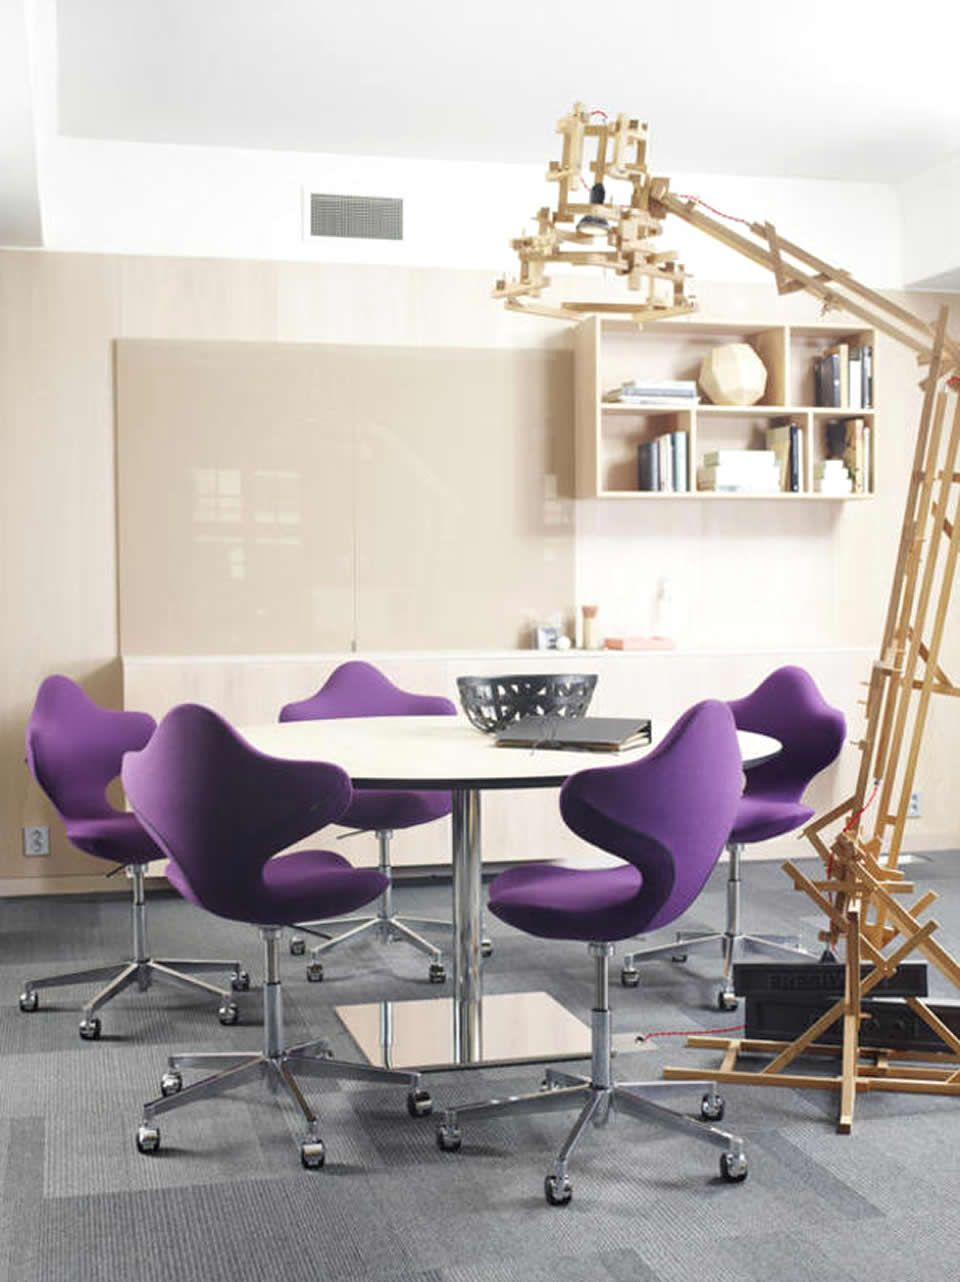 small office meeting room interior design with purple active chair